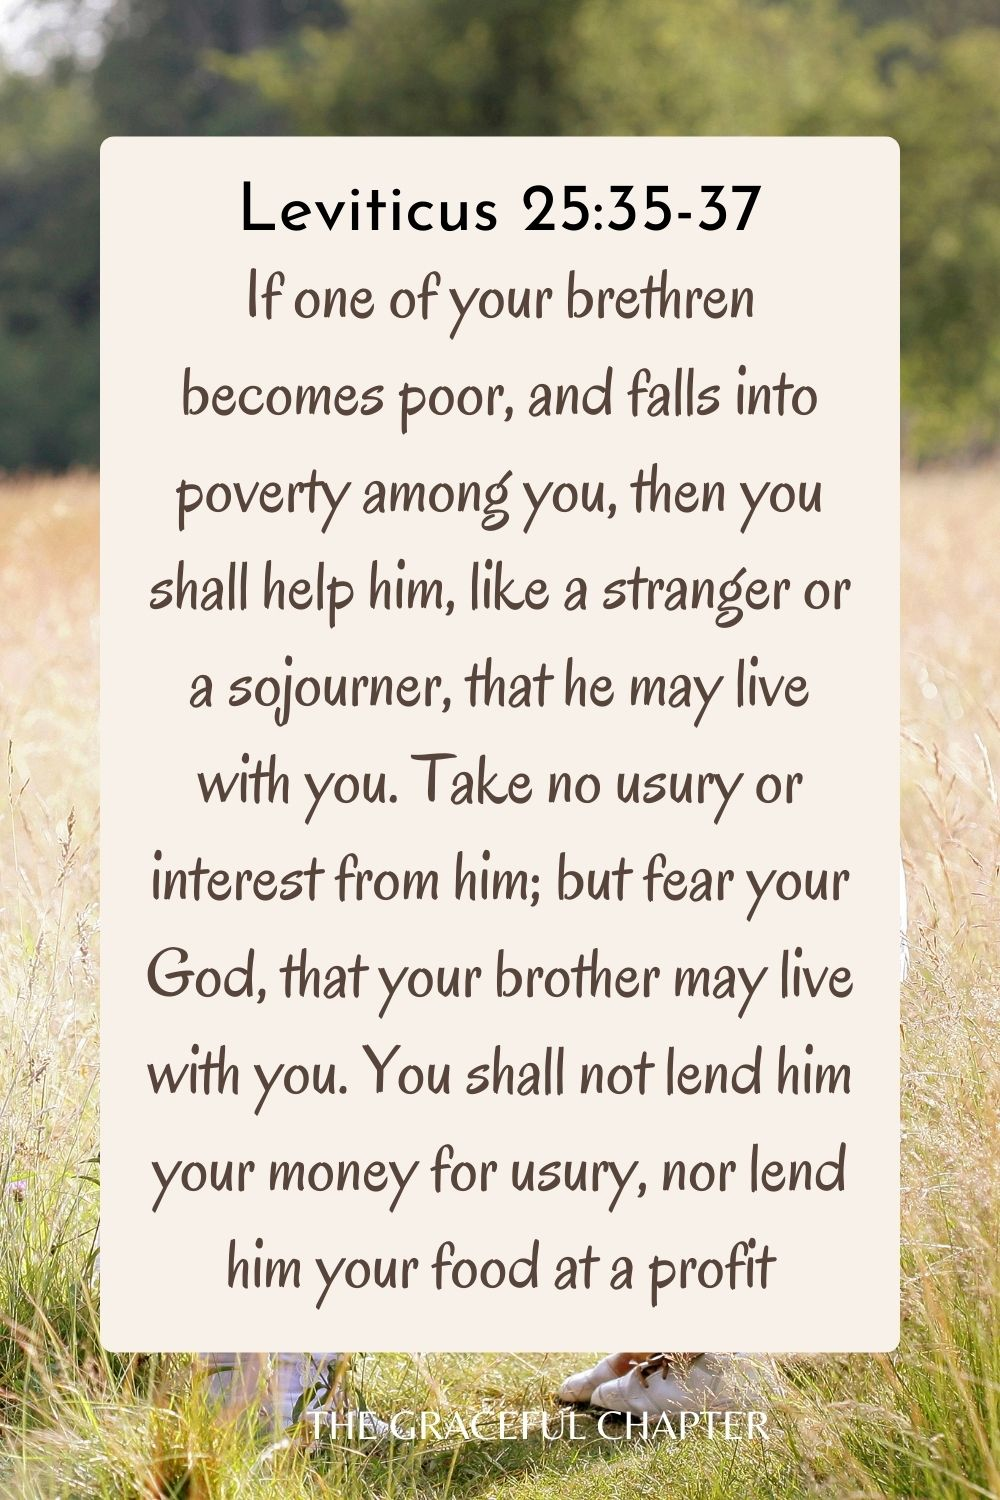 If one of your brethren becomes poor, and falls into poverty among you, then you shall help him, like a stranger or a sojourner, that he may live with you. Take no usury or interest from him; but fear your God, that your brother may live with you. You shall not lend him your money for usury, nor lend him your food at a profit. Leviticus 25:35-37